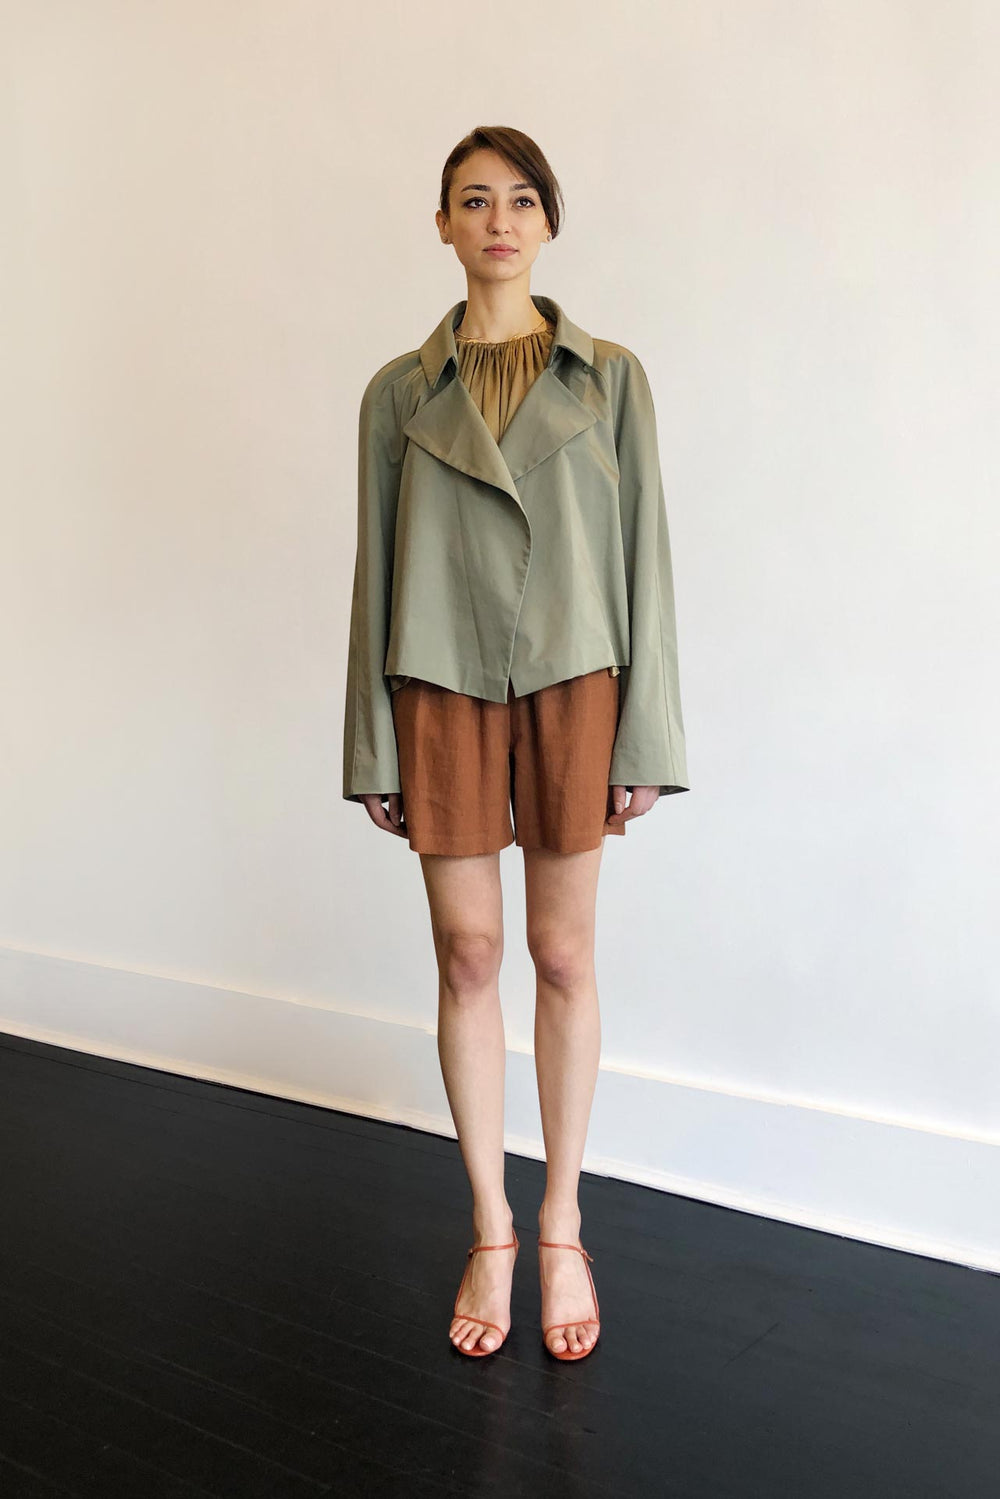 Fashion Designer CARL KAPP collection | Tortoise Casual oversized cotton Jacket | Sydney Australia